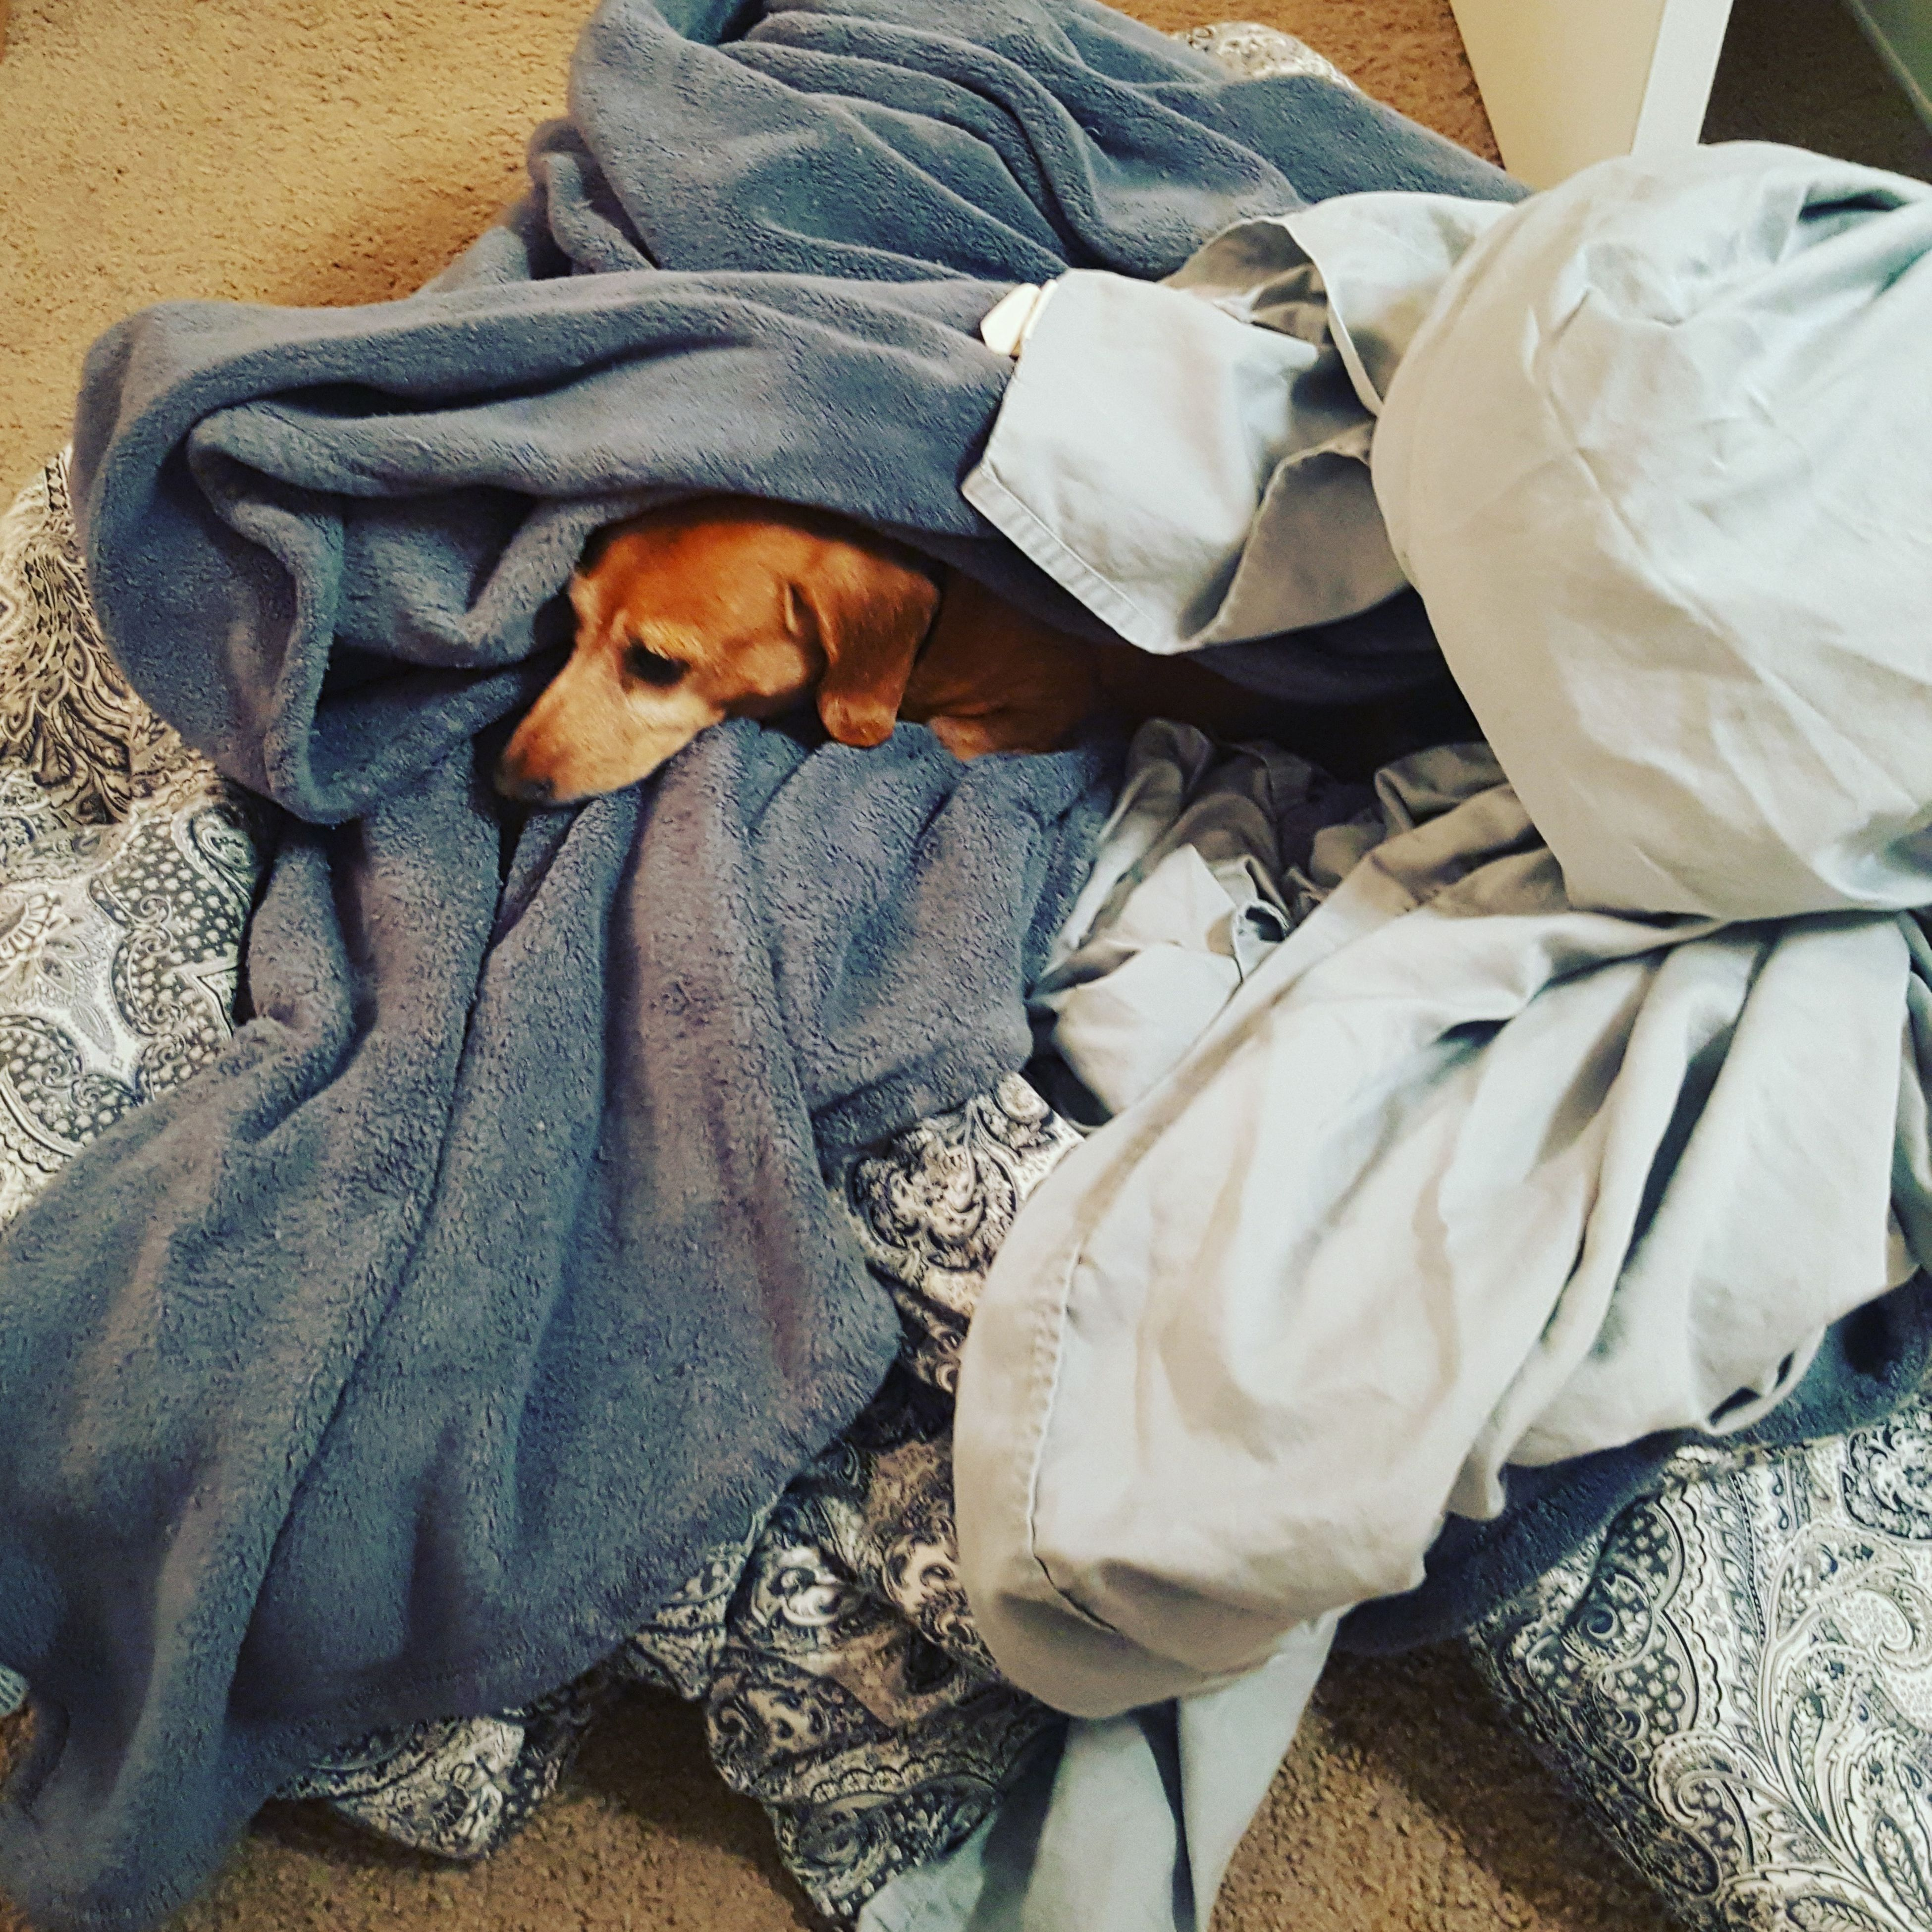 pets, bed, one animal, domestic animals, animal themes, mammal, dog, indoors, relaxation, bedroom, lying down, pillow, no people, close-up, day